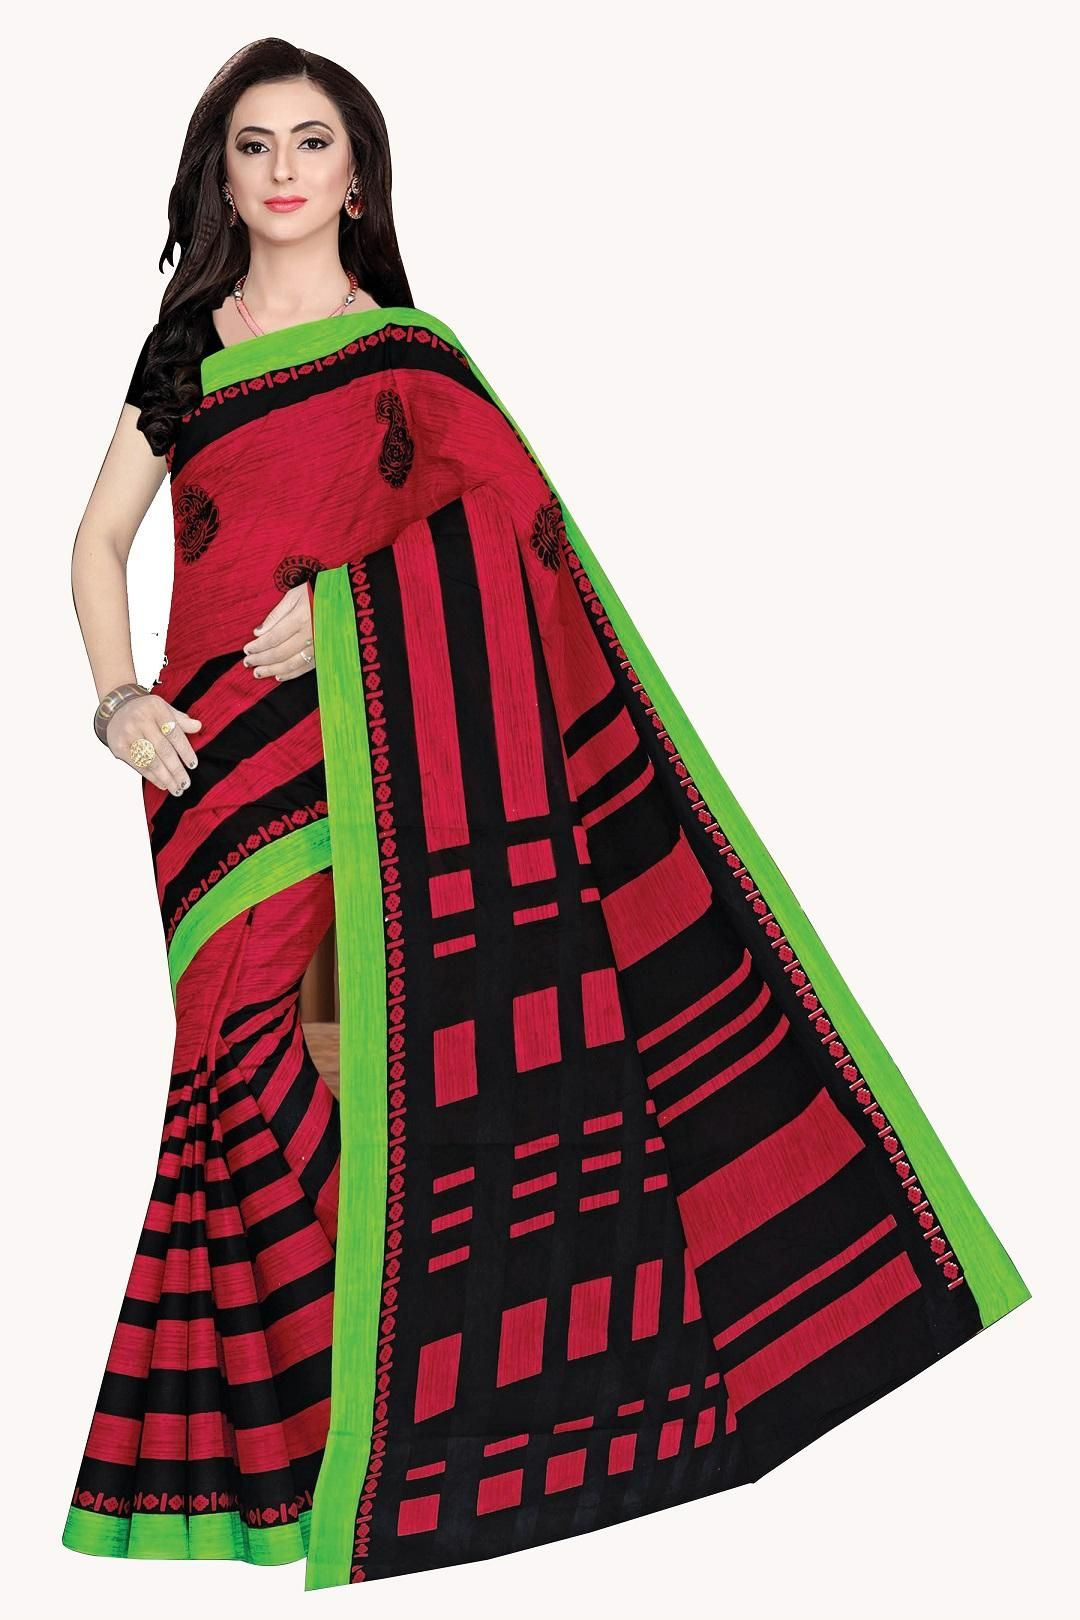 Women's Valuable Red Cotton Printed Regular Saree With Blouse Piece